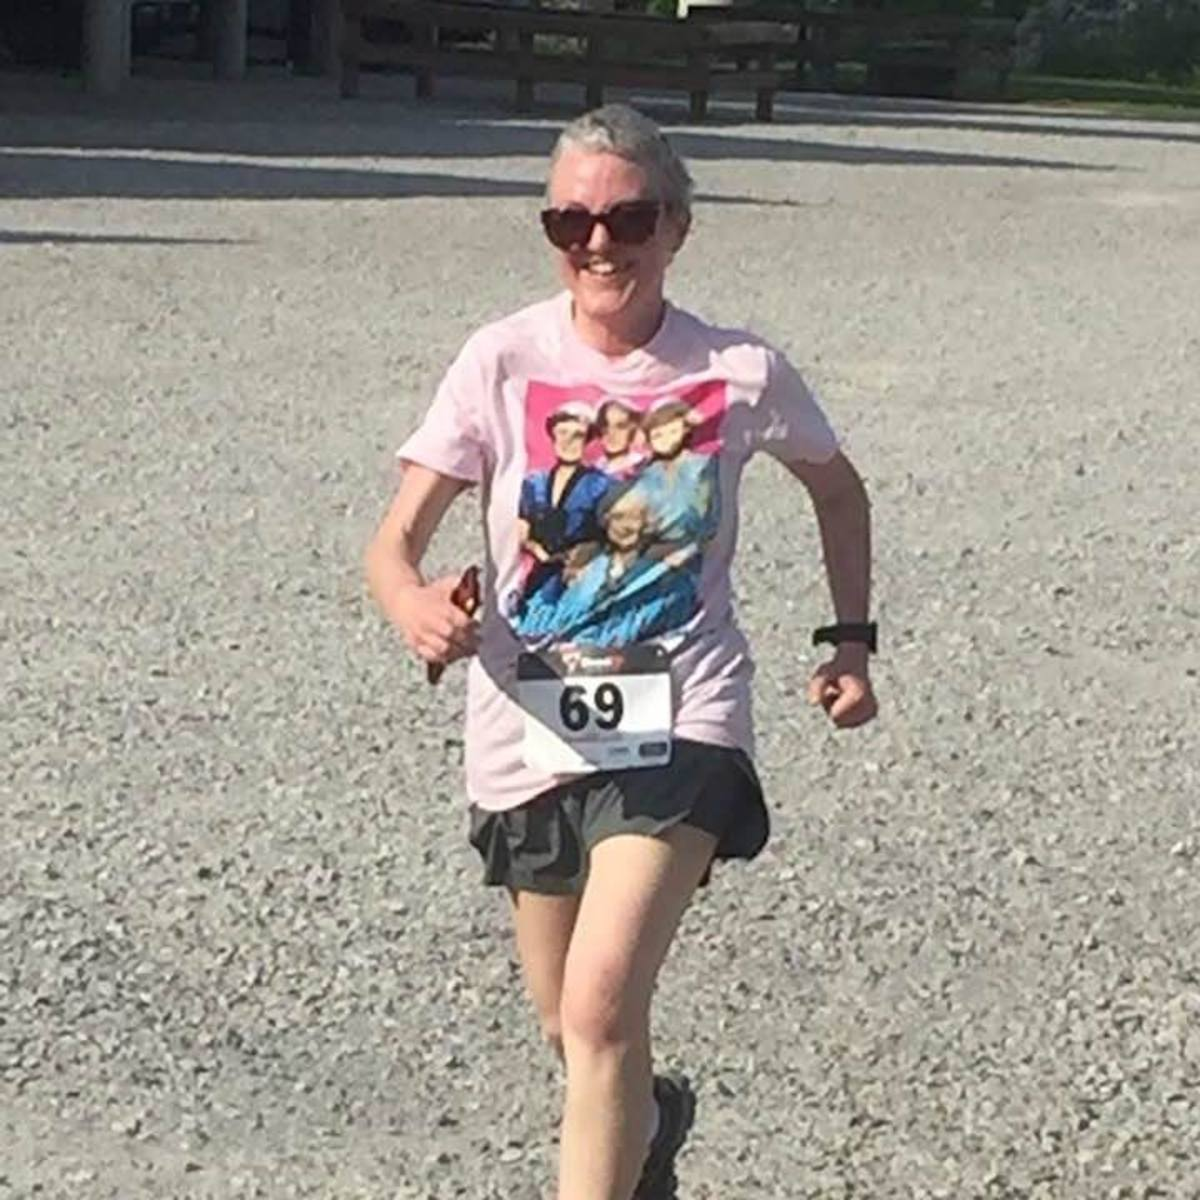 Me finishing my first 5K after treatment. I am running my fourth one tomorrow!